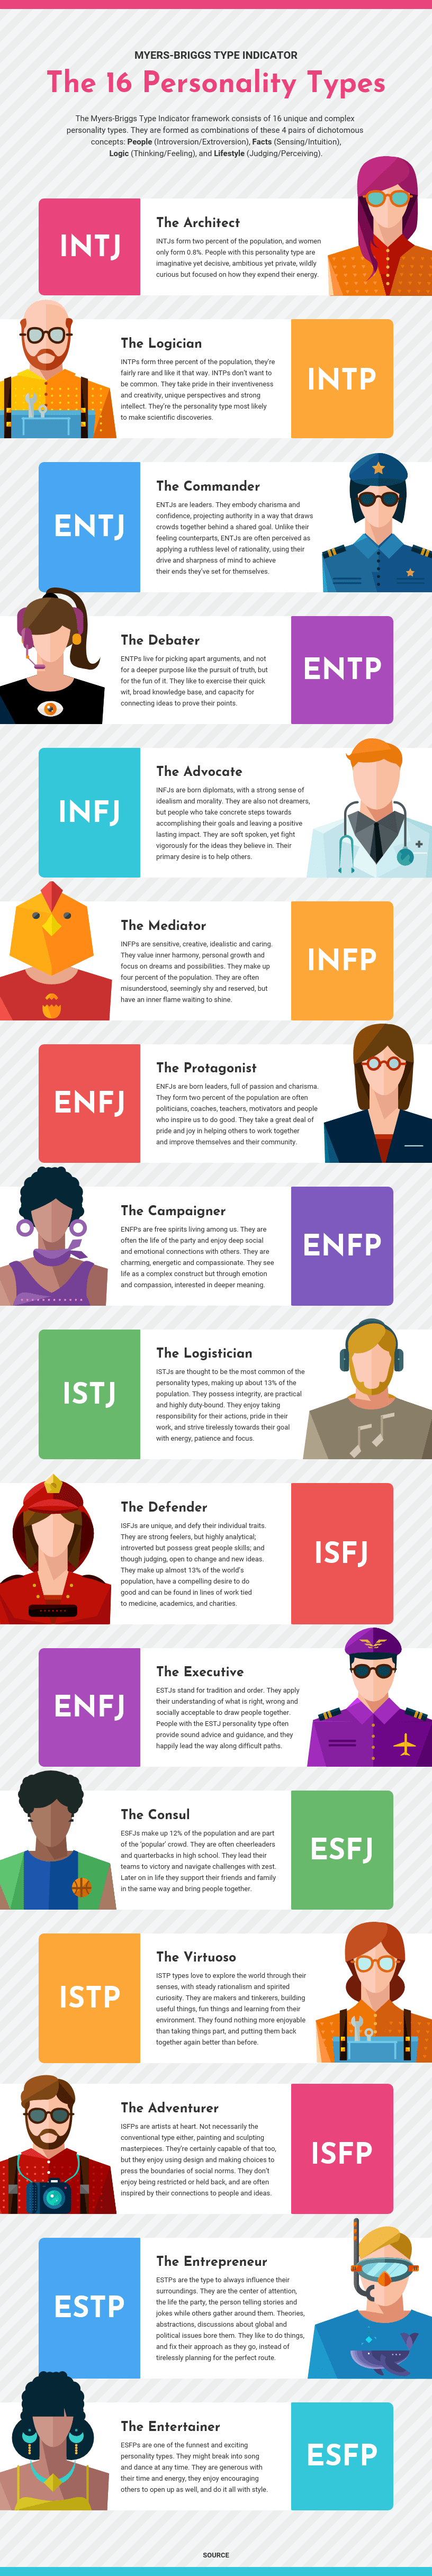 Myers Briggs Personality Types Infographic Template Template - Venngage